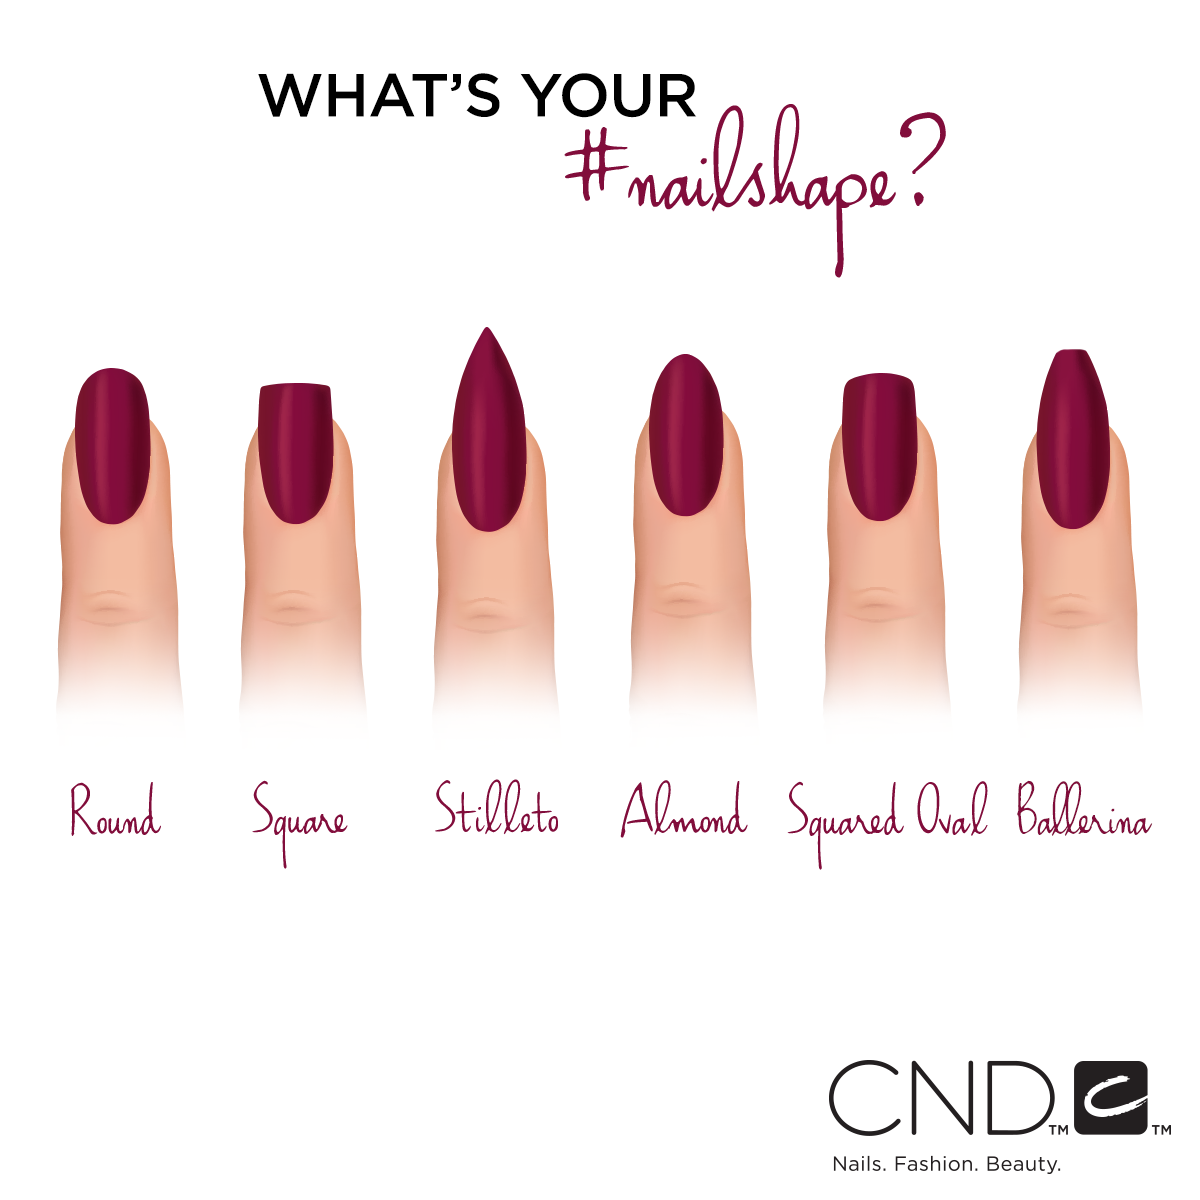 Which Nail Shape Do You Prefer When You Get A Manicure